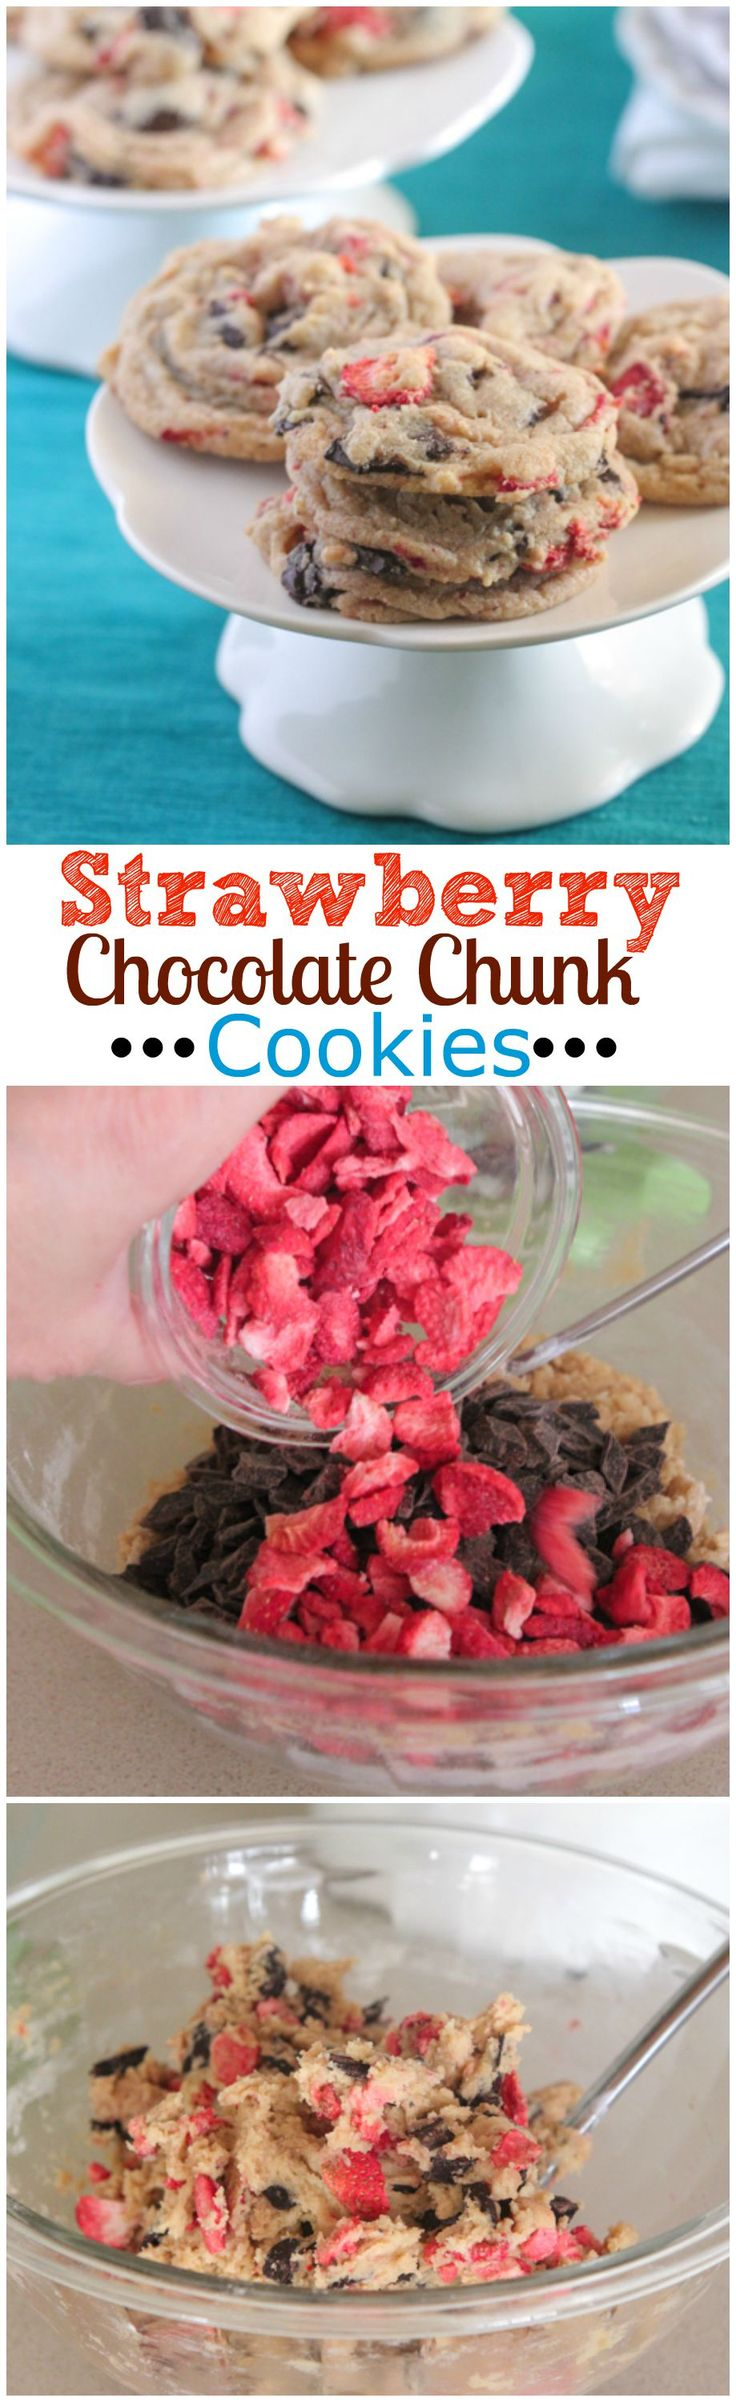 Strawberry Chocolate Chunk Cookies uses freeze dried strawberries!  These are awesome!